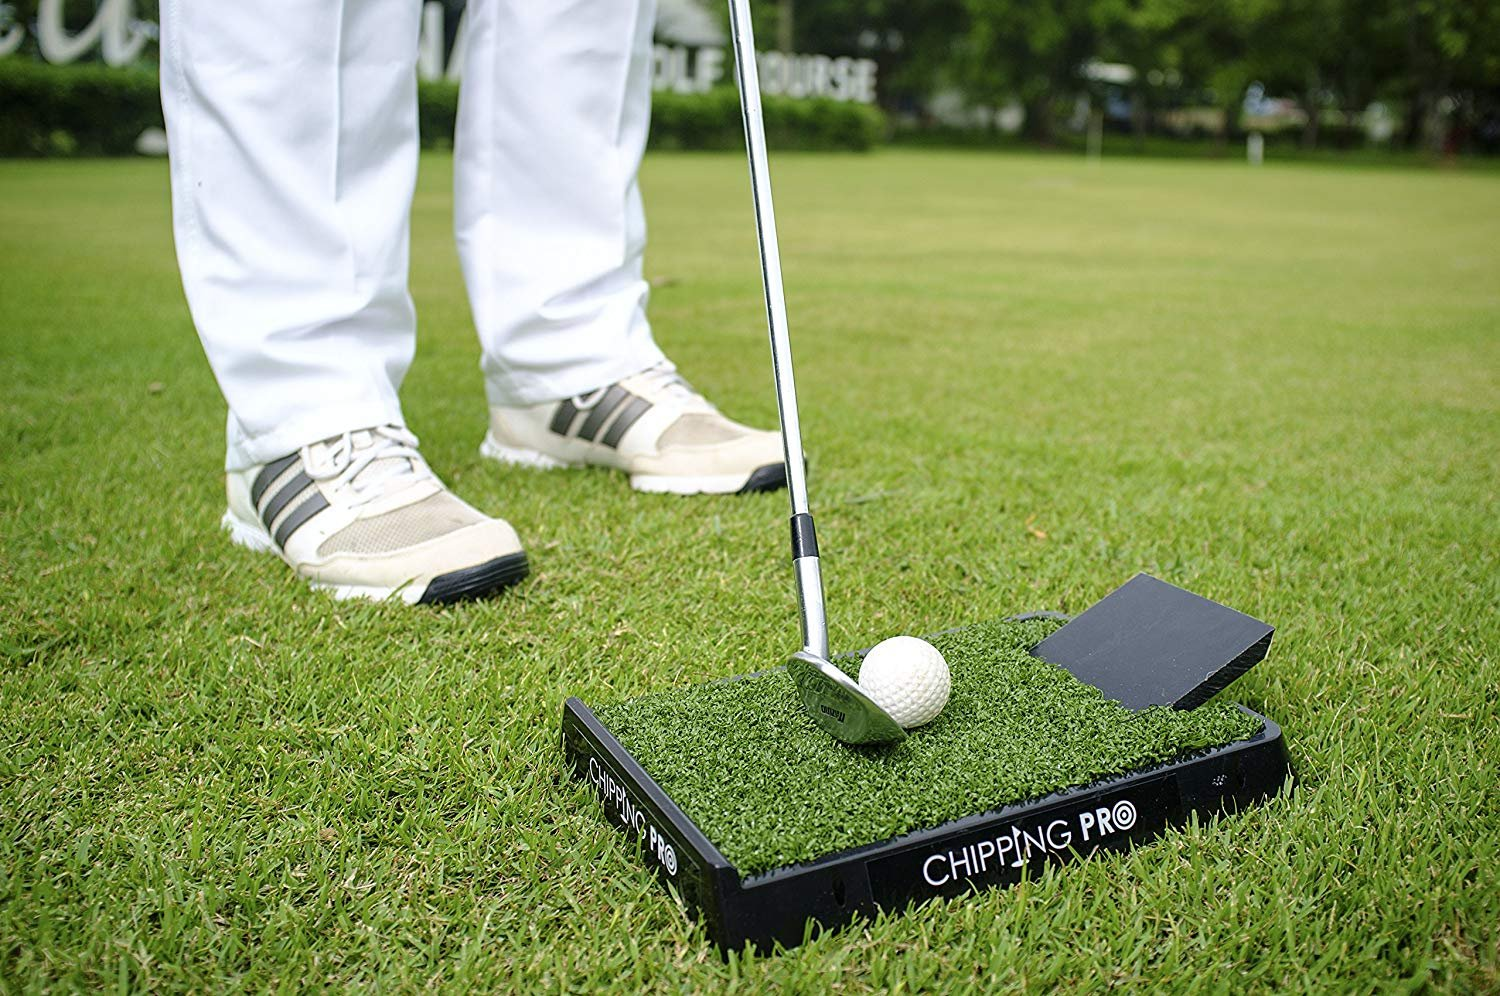 Chipping pro mat training aid golf